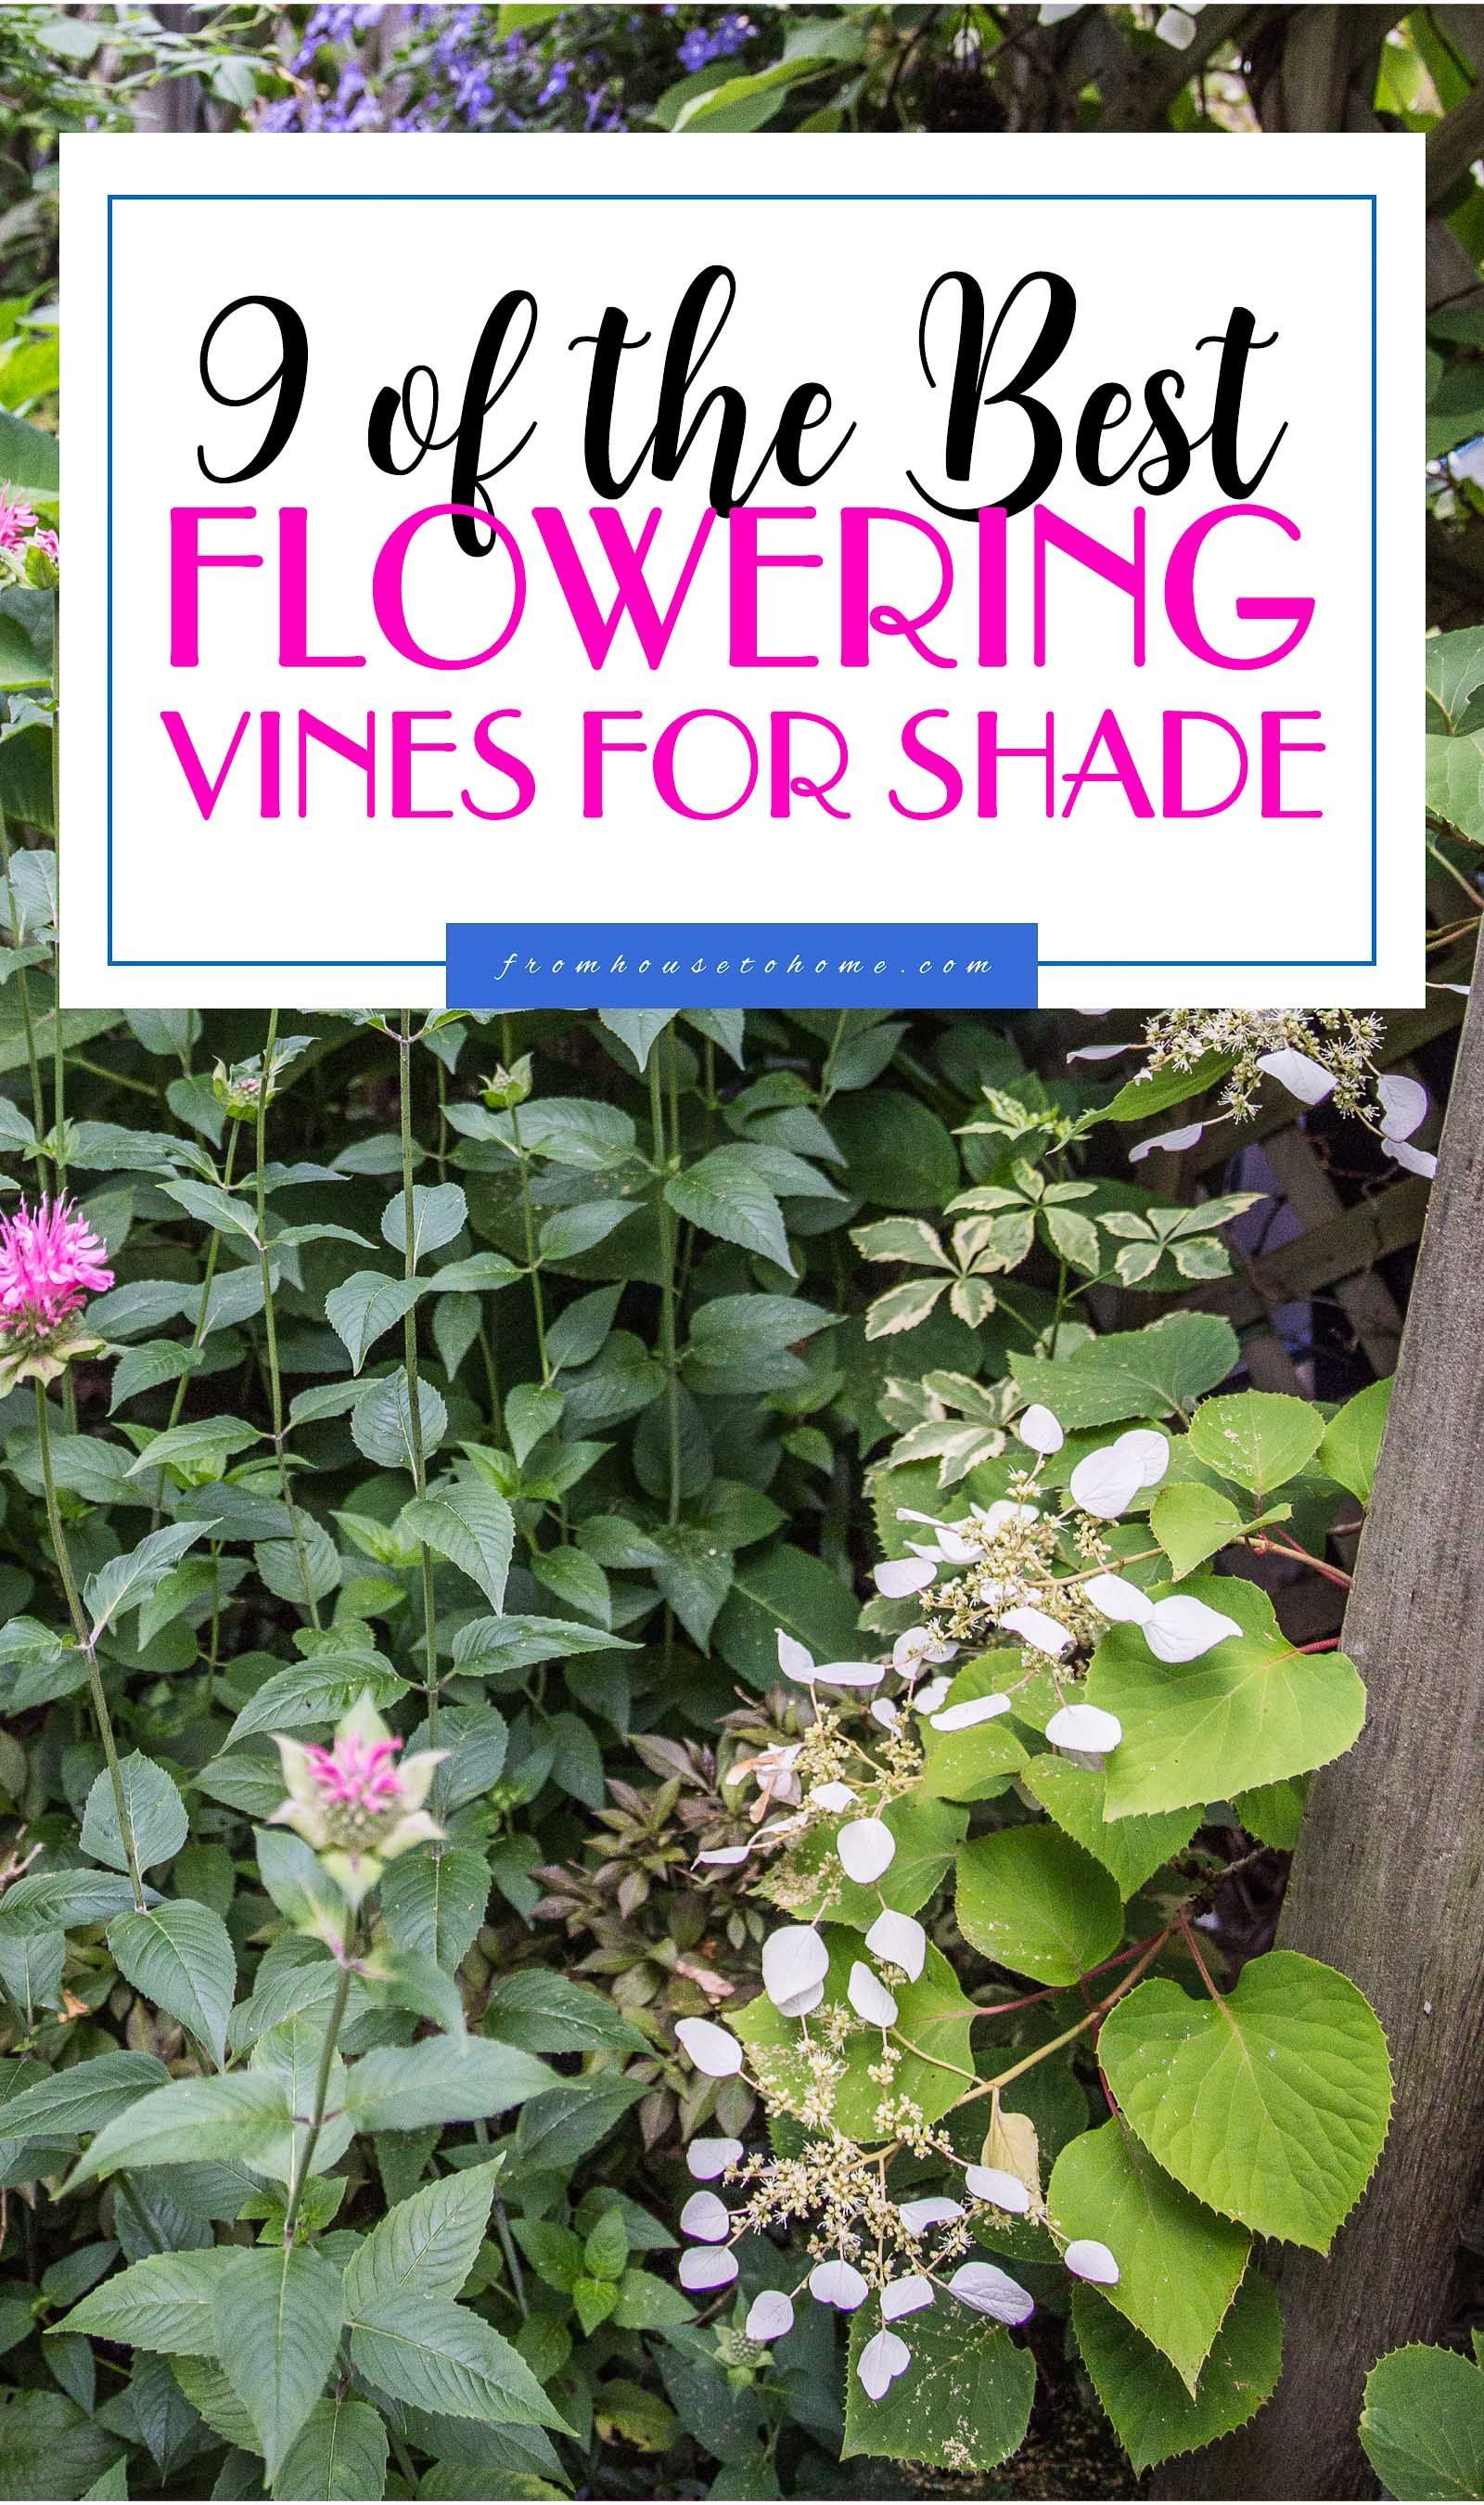 This List Of Flowering Vines For The Shade Is The Best I Love That These Are All Perennial And Non Invasive Plan Flowering Vines Shade Perennials Garden Vines